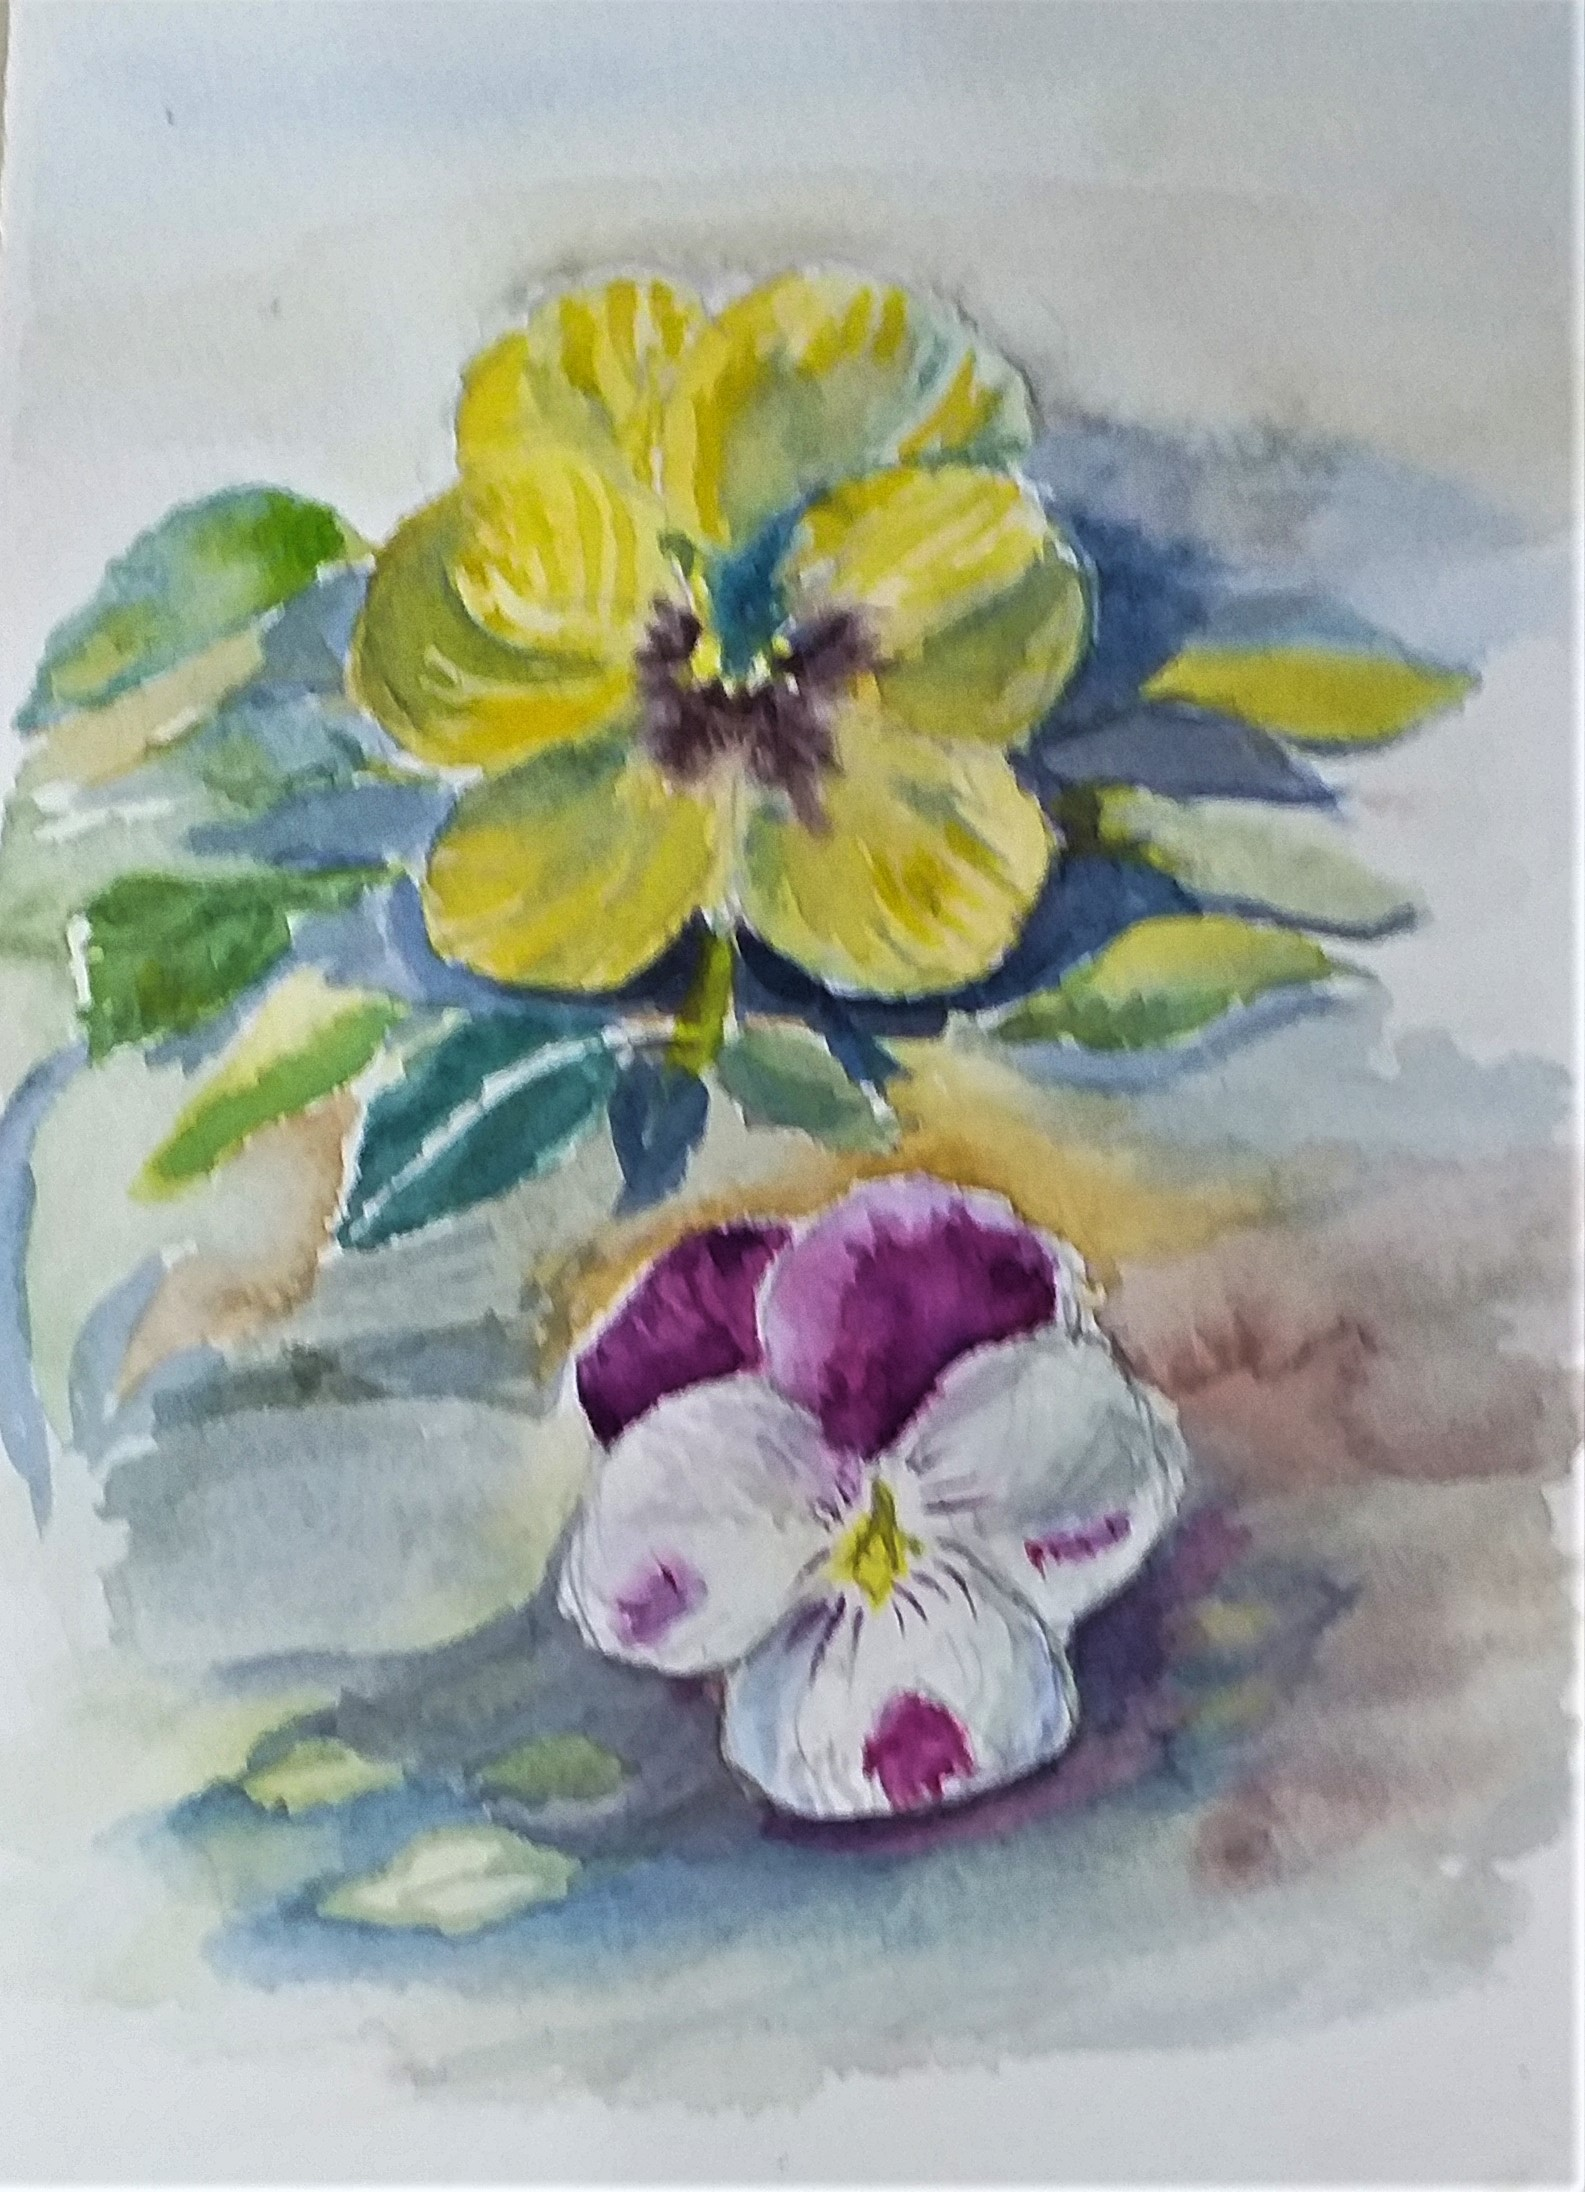 Dana's study of pansies in watercolour created at watercolour art course in Worcestershire.